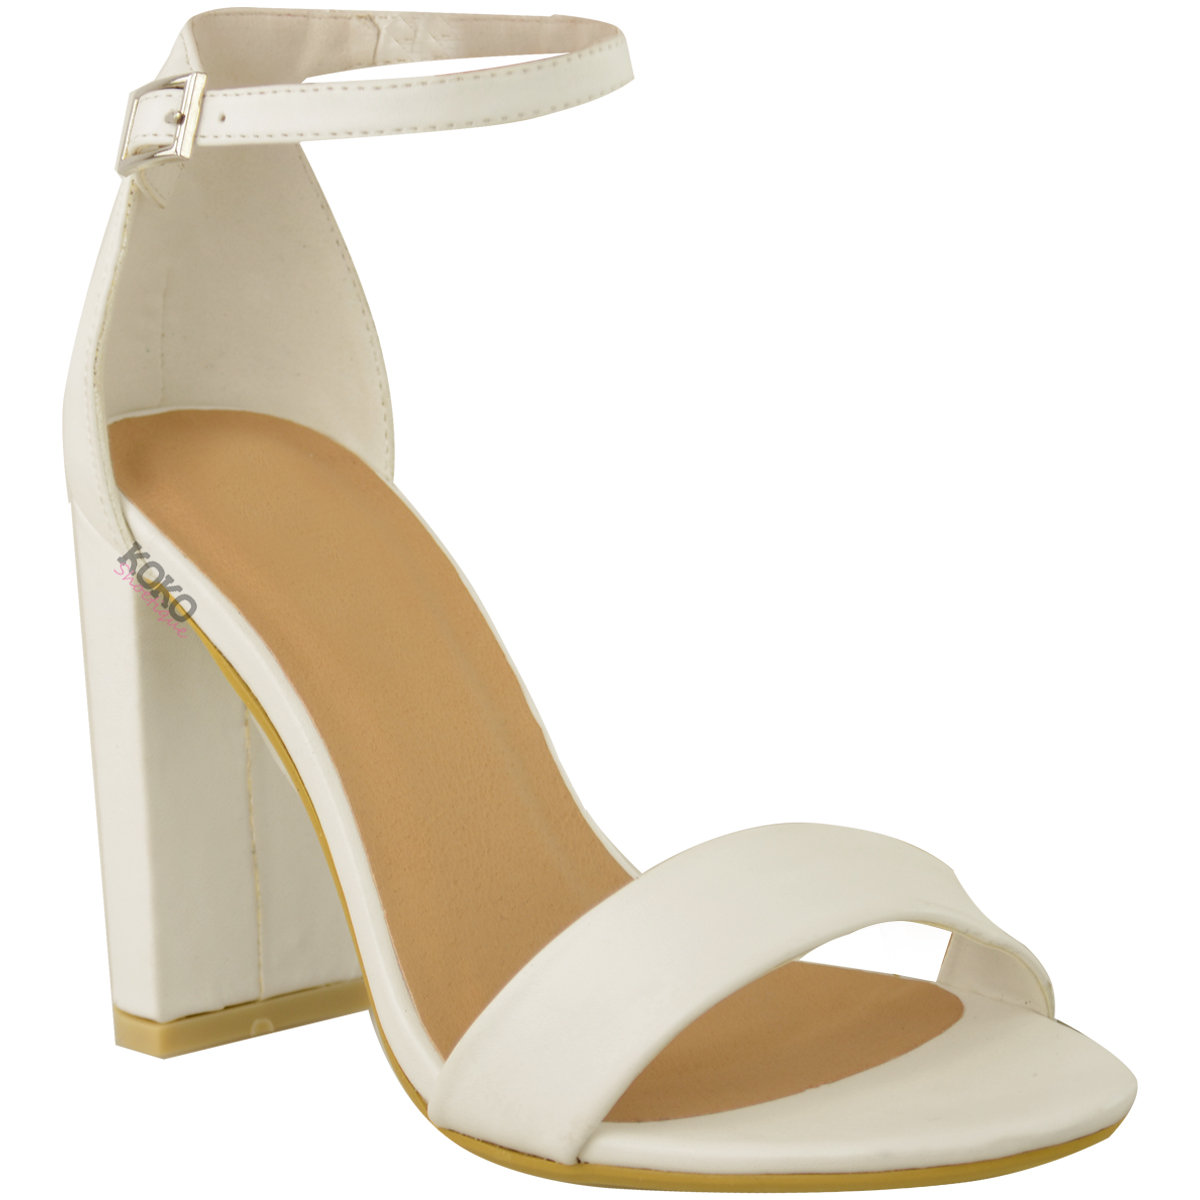 Womens-Ladies-Block-High-Heels-Ankle-Strap-Sexy-Open-Toe-Sandals-Shoes-Size-New miniatuur 38